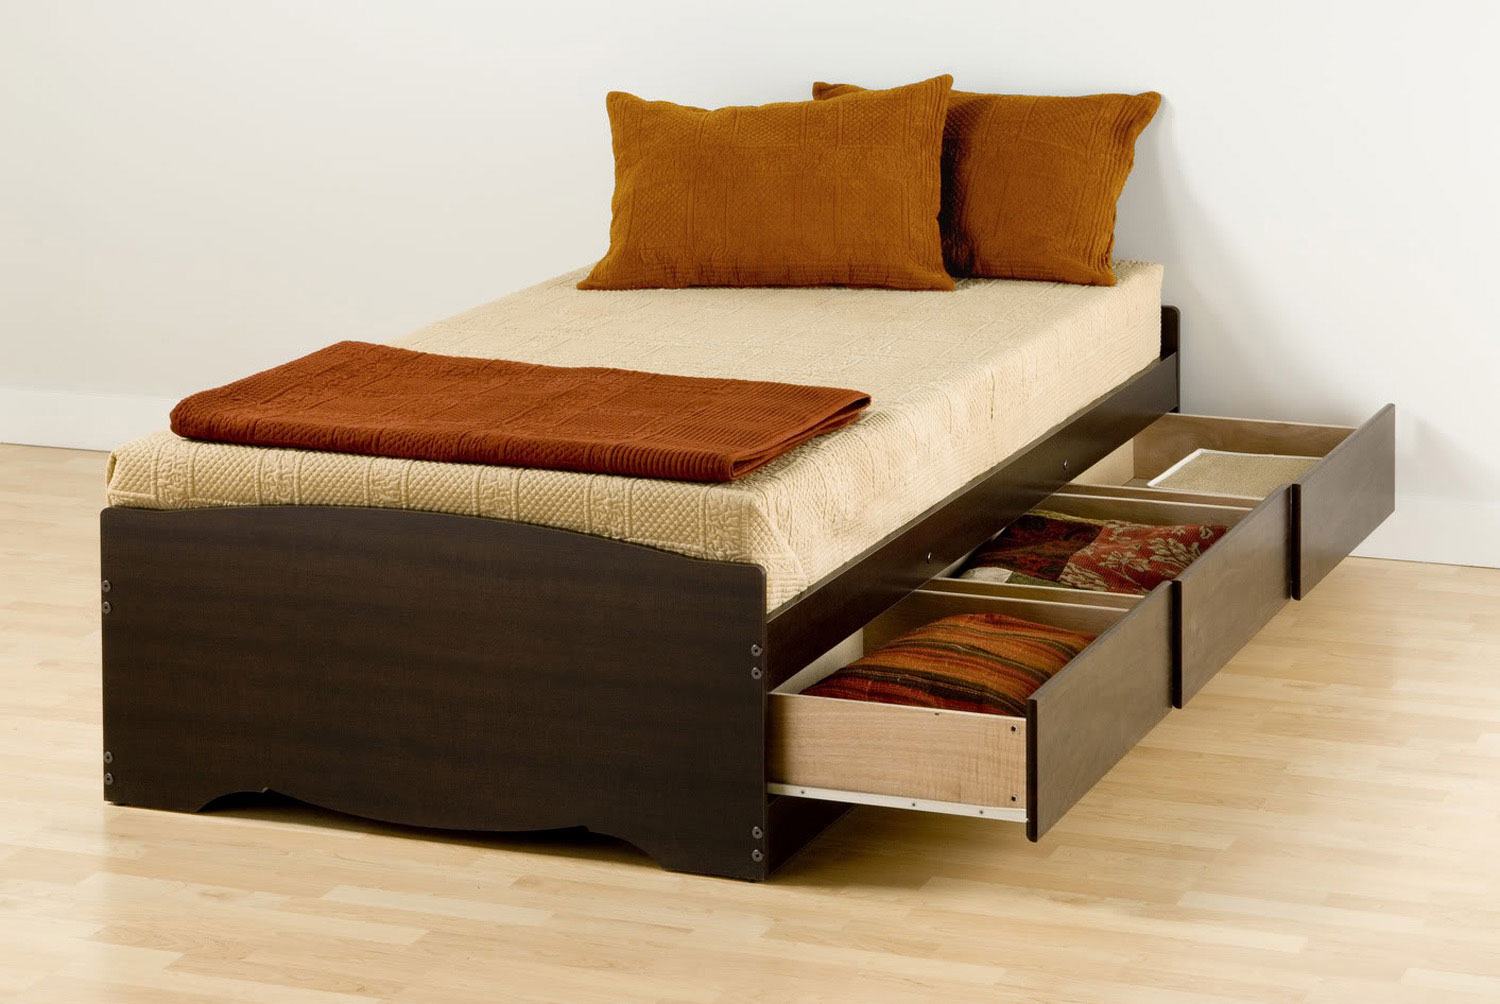 Prepac Mate's Platform Storage Bed with 3 Drawers - Espresso